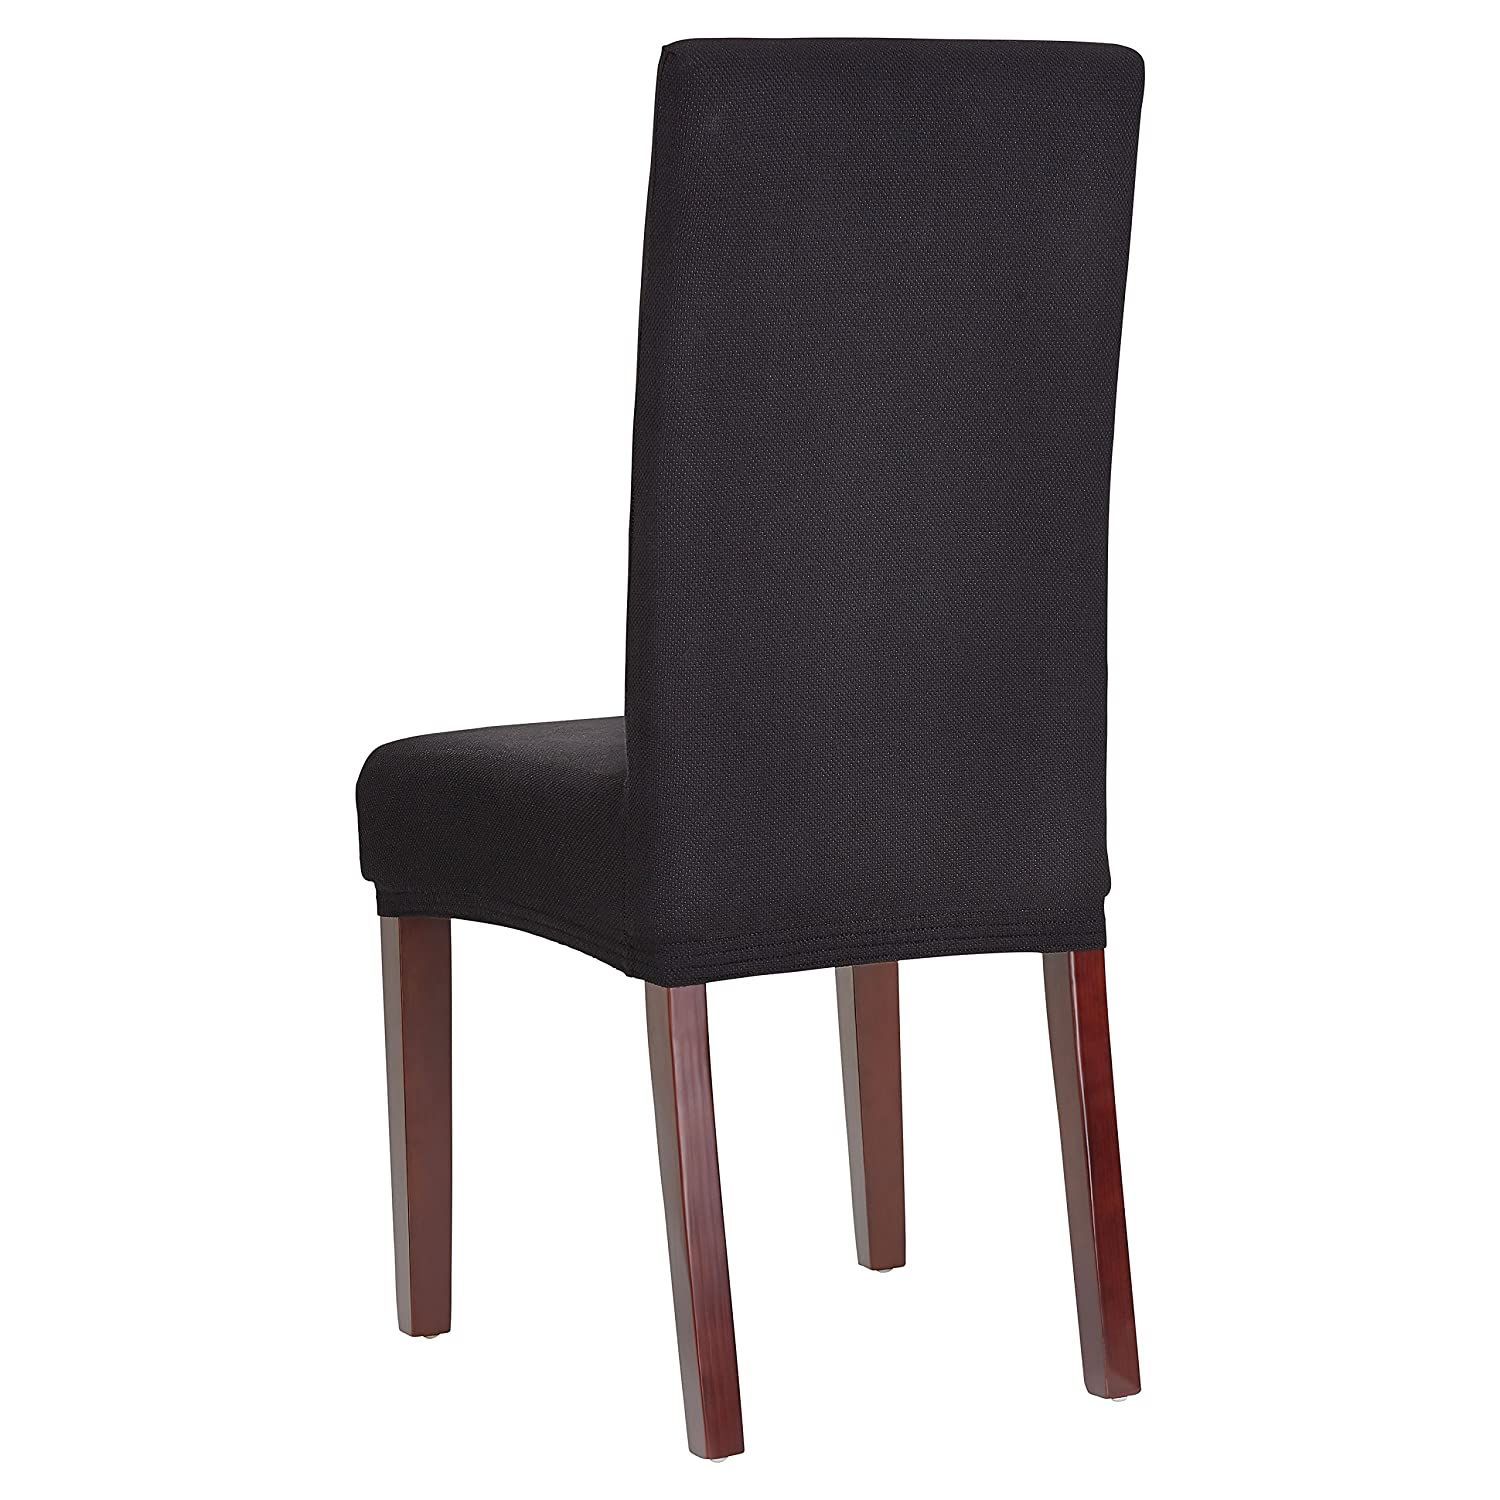 Bellboni dining chair covers, durable, high-quality dining chair covers made from strong fabrics, chair slip covers, stretch, two-way stretch covers to fit many sizes of dining chairs, 6 pack, black